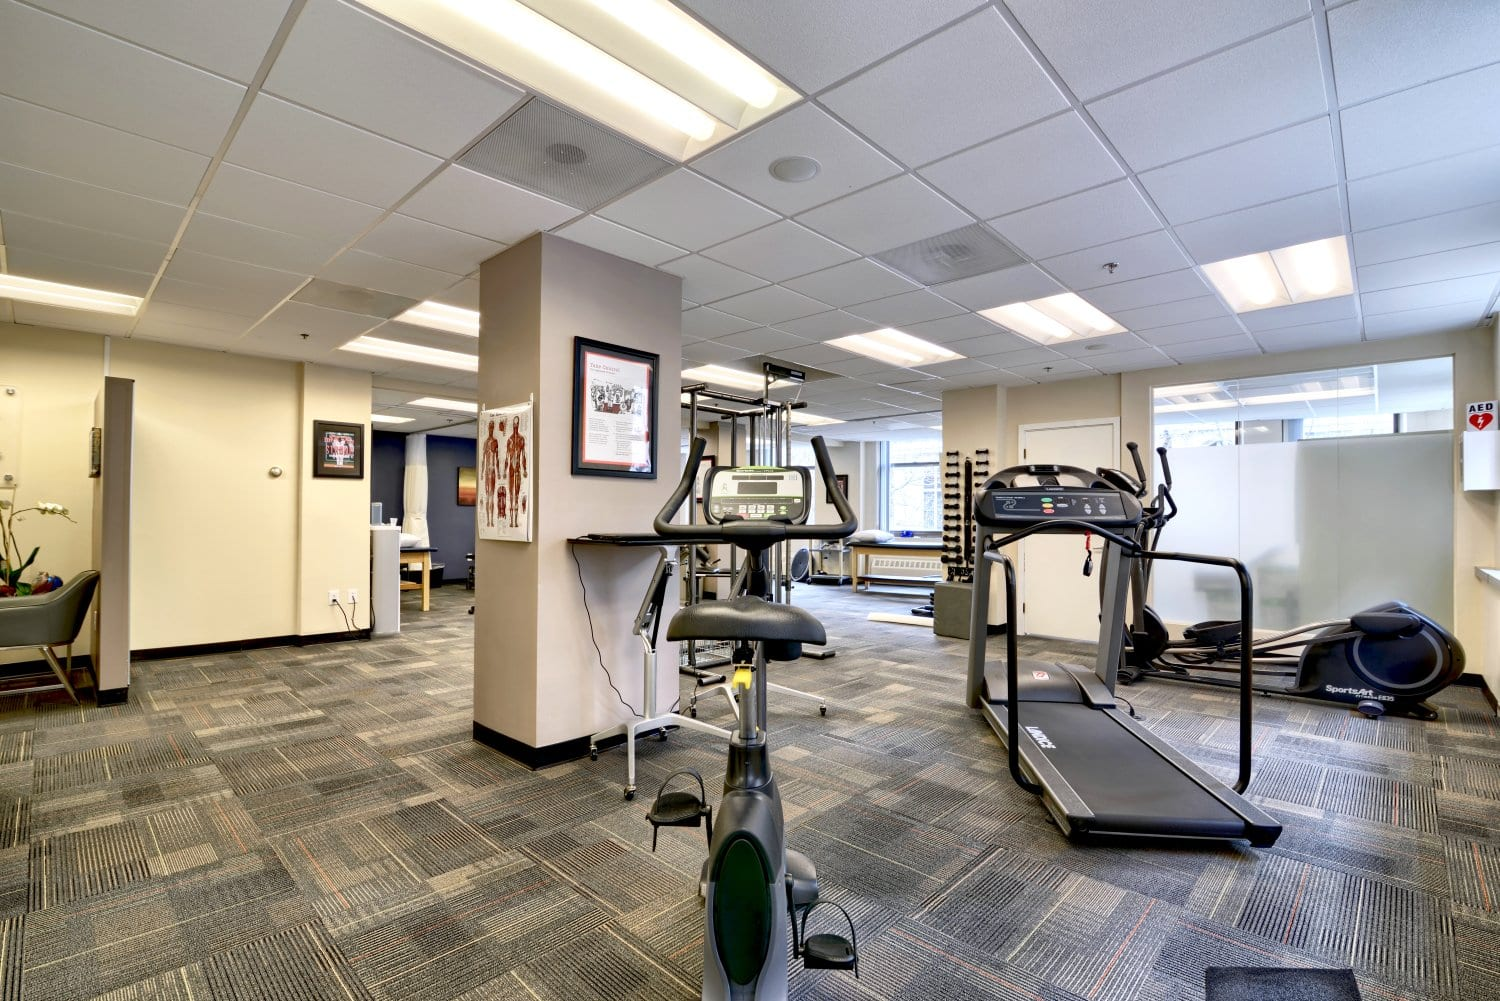 This image shows a treadmill and a bike at our physical therapy clinic in Boston, Massachusetts.